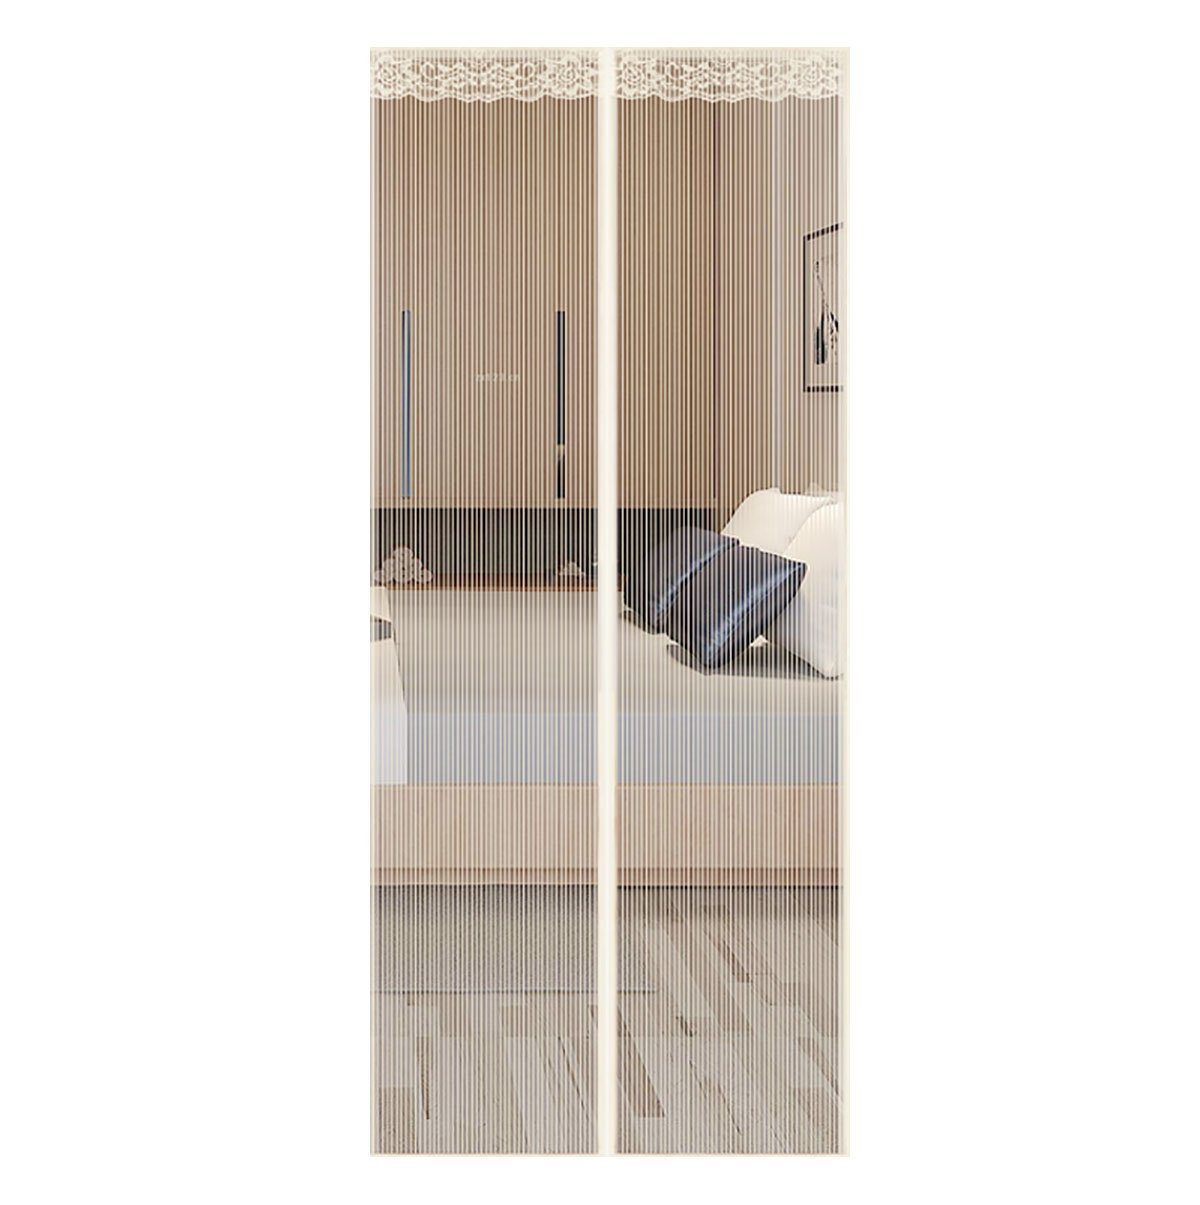 Q&F Magnetic Screen Door With Heavy Duty,Mesh Curtains For French Doors-sliding Doors Fishing Boat-super Quiet,Hands Free,Toddler And Pet Friendly-cream color 115x230cm(45x91inch)